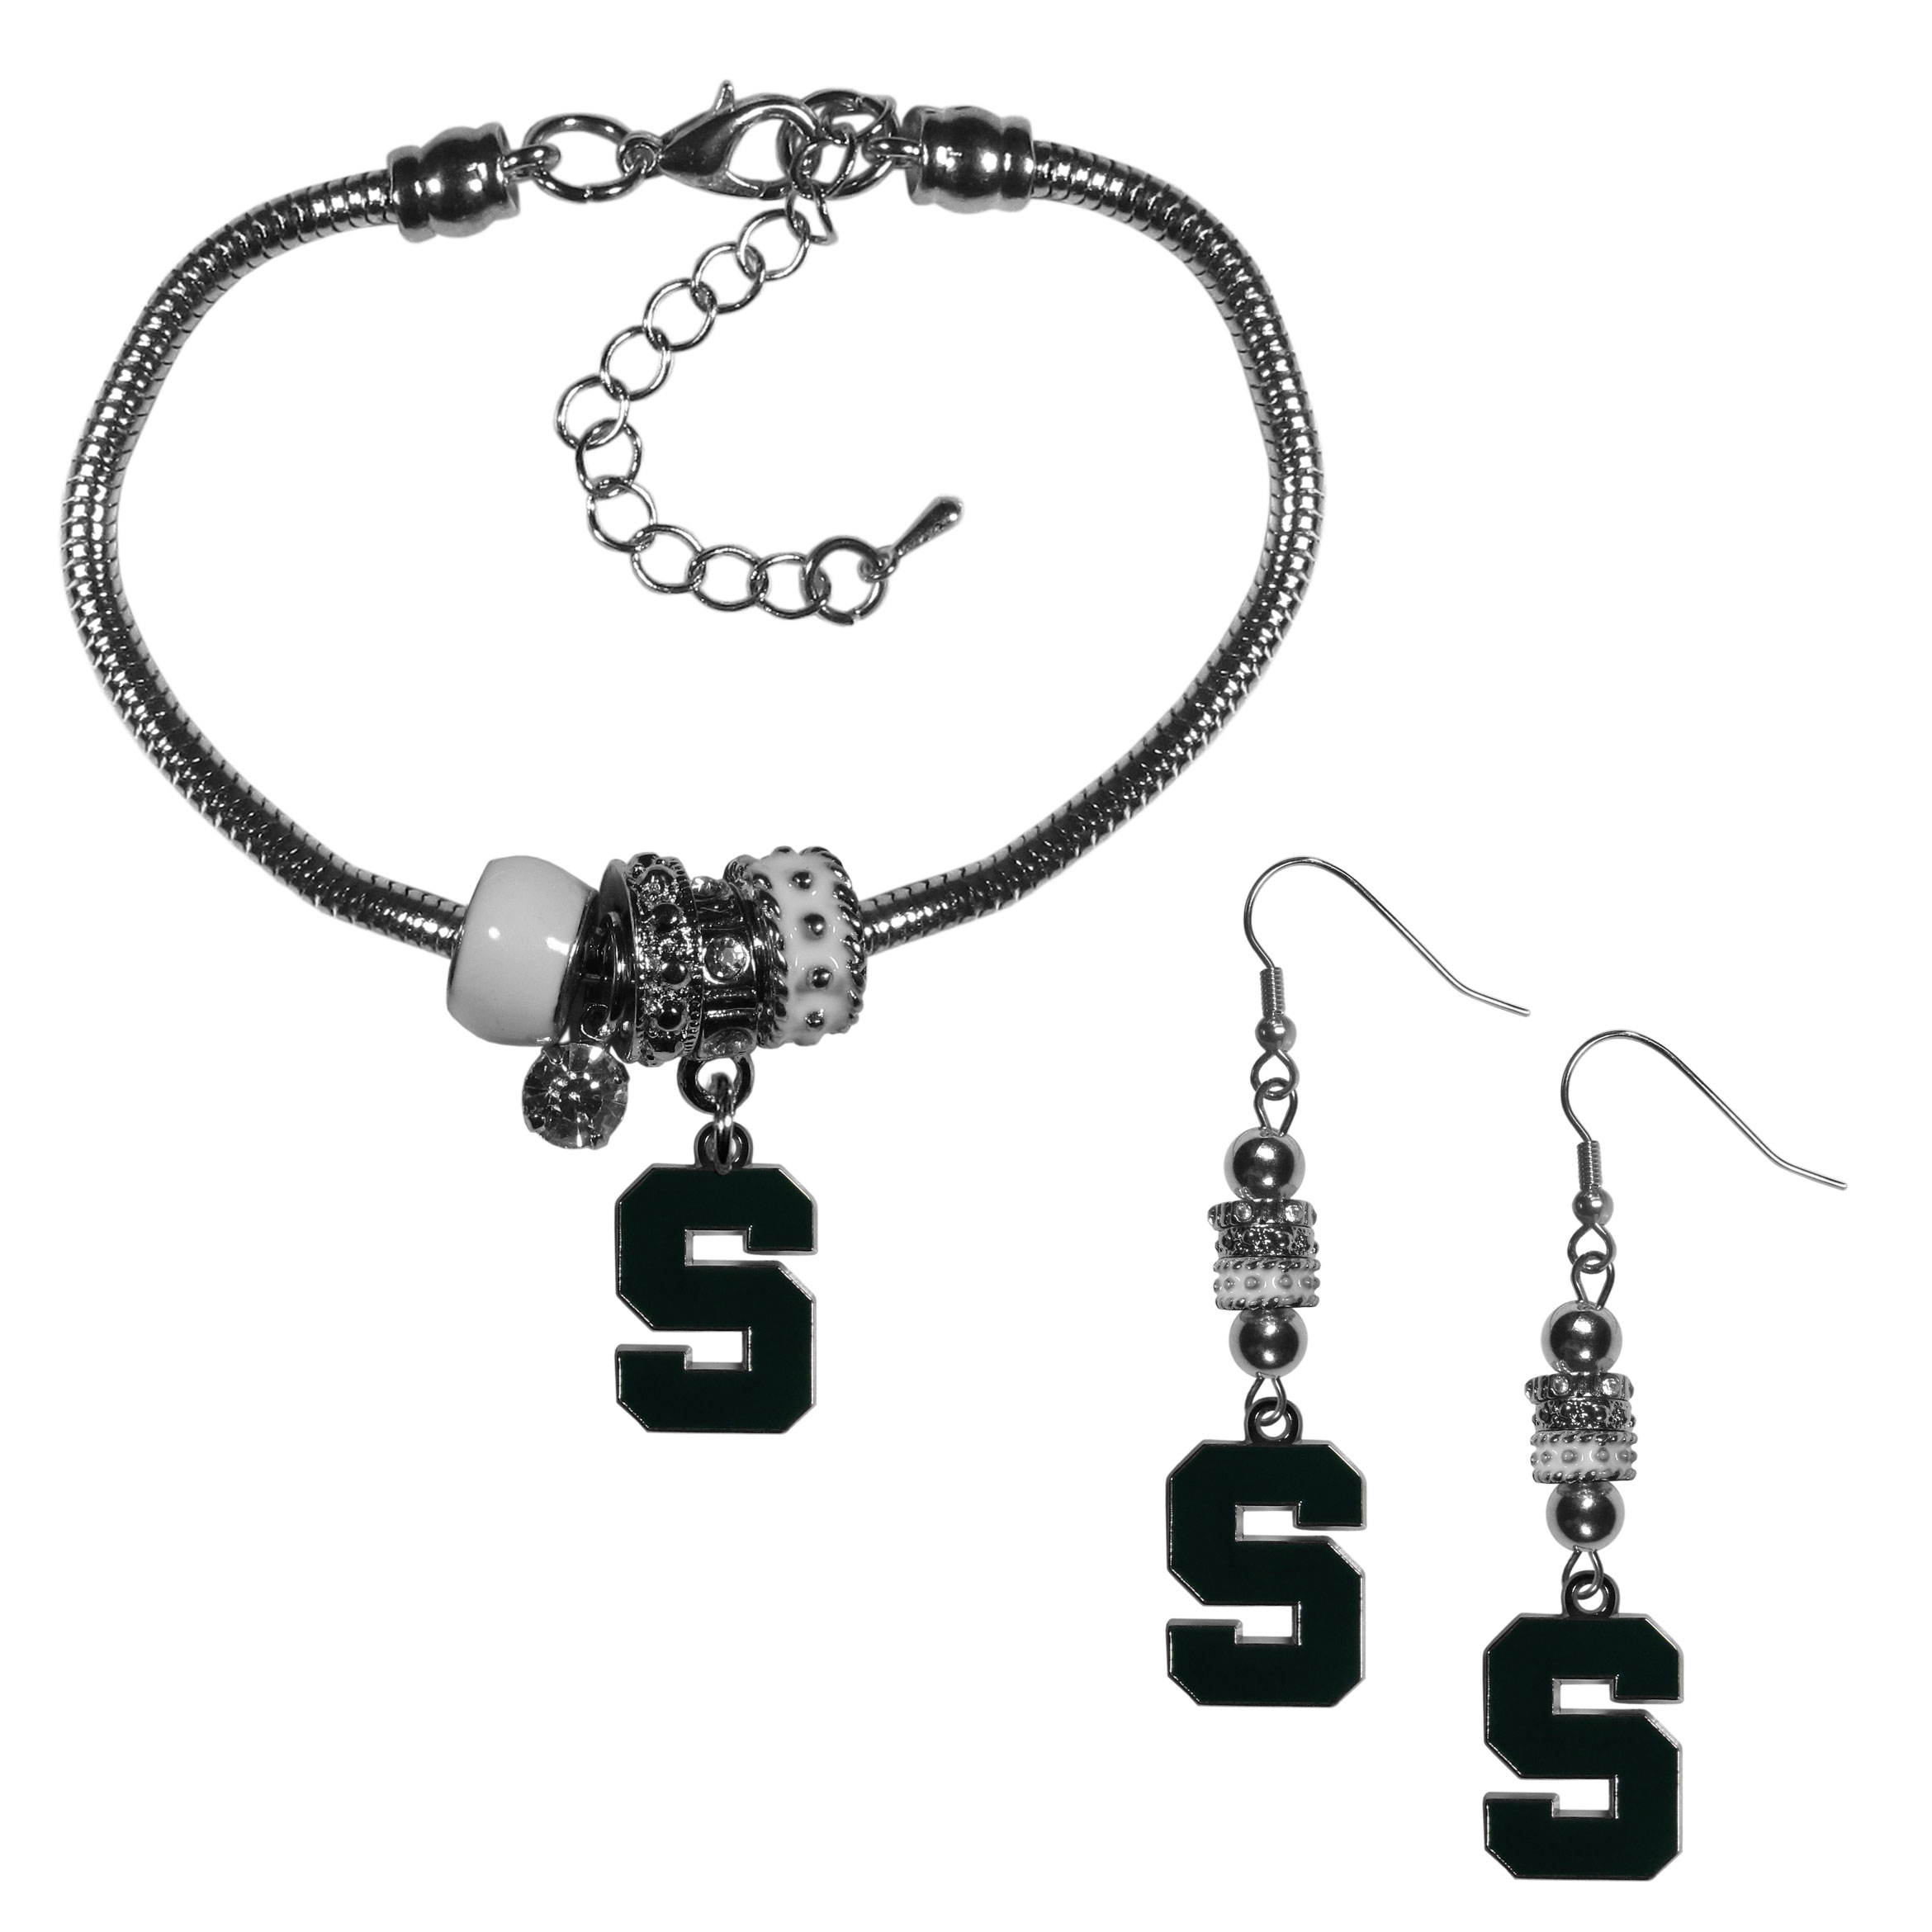 Michigan St. Spartans Euro Bead Earrings and Bracelet Set - We combine the popular Euro bead style with your love of the Michigan St. Spartans with this beautiful jewelry set that includes earrings and a matching bracelet. The stylish earrings feature hypoallergenic, nickel free fishhook posts and 3 team colored Euro beads and a metal team charm. The matching snake chain bracelet is 7.5 inches long with a 2 inch extender and 4 Euro beads with a rhinestone charm and team charm.